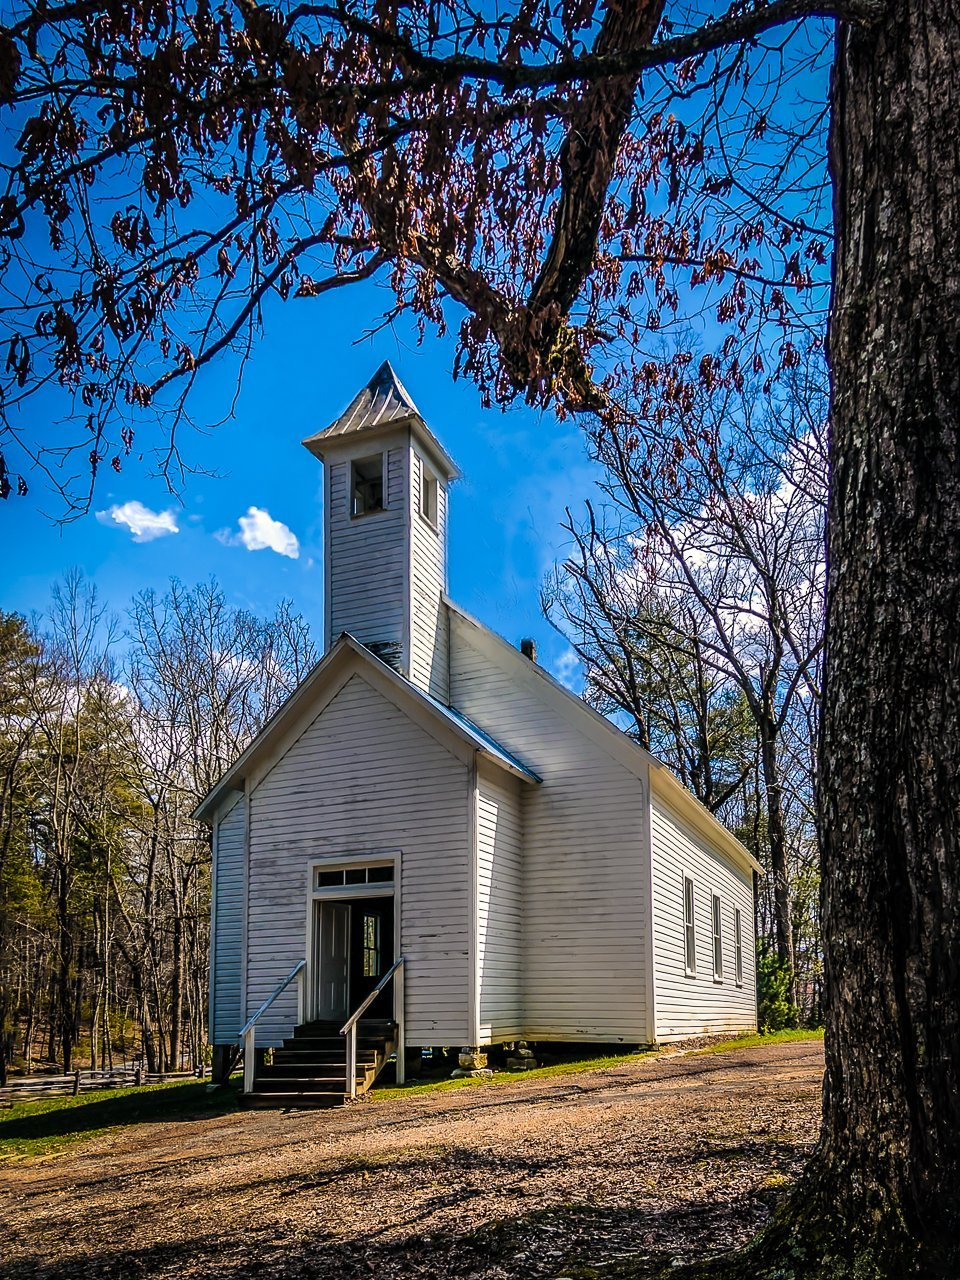 Paper Print Cades Cove Primitive Baptist Church1 JaiGieEse PhotoArt